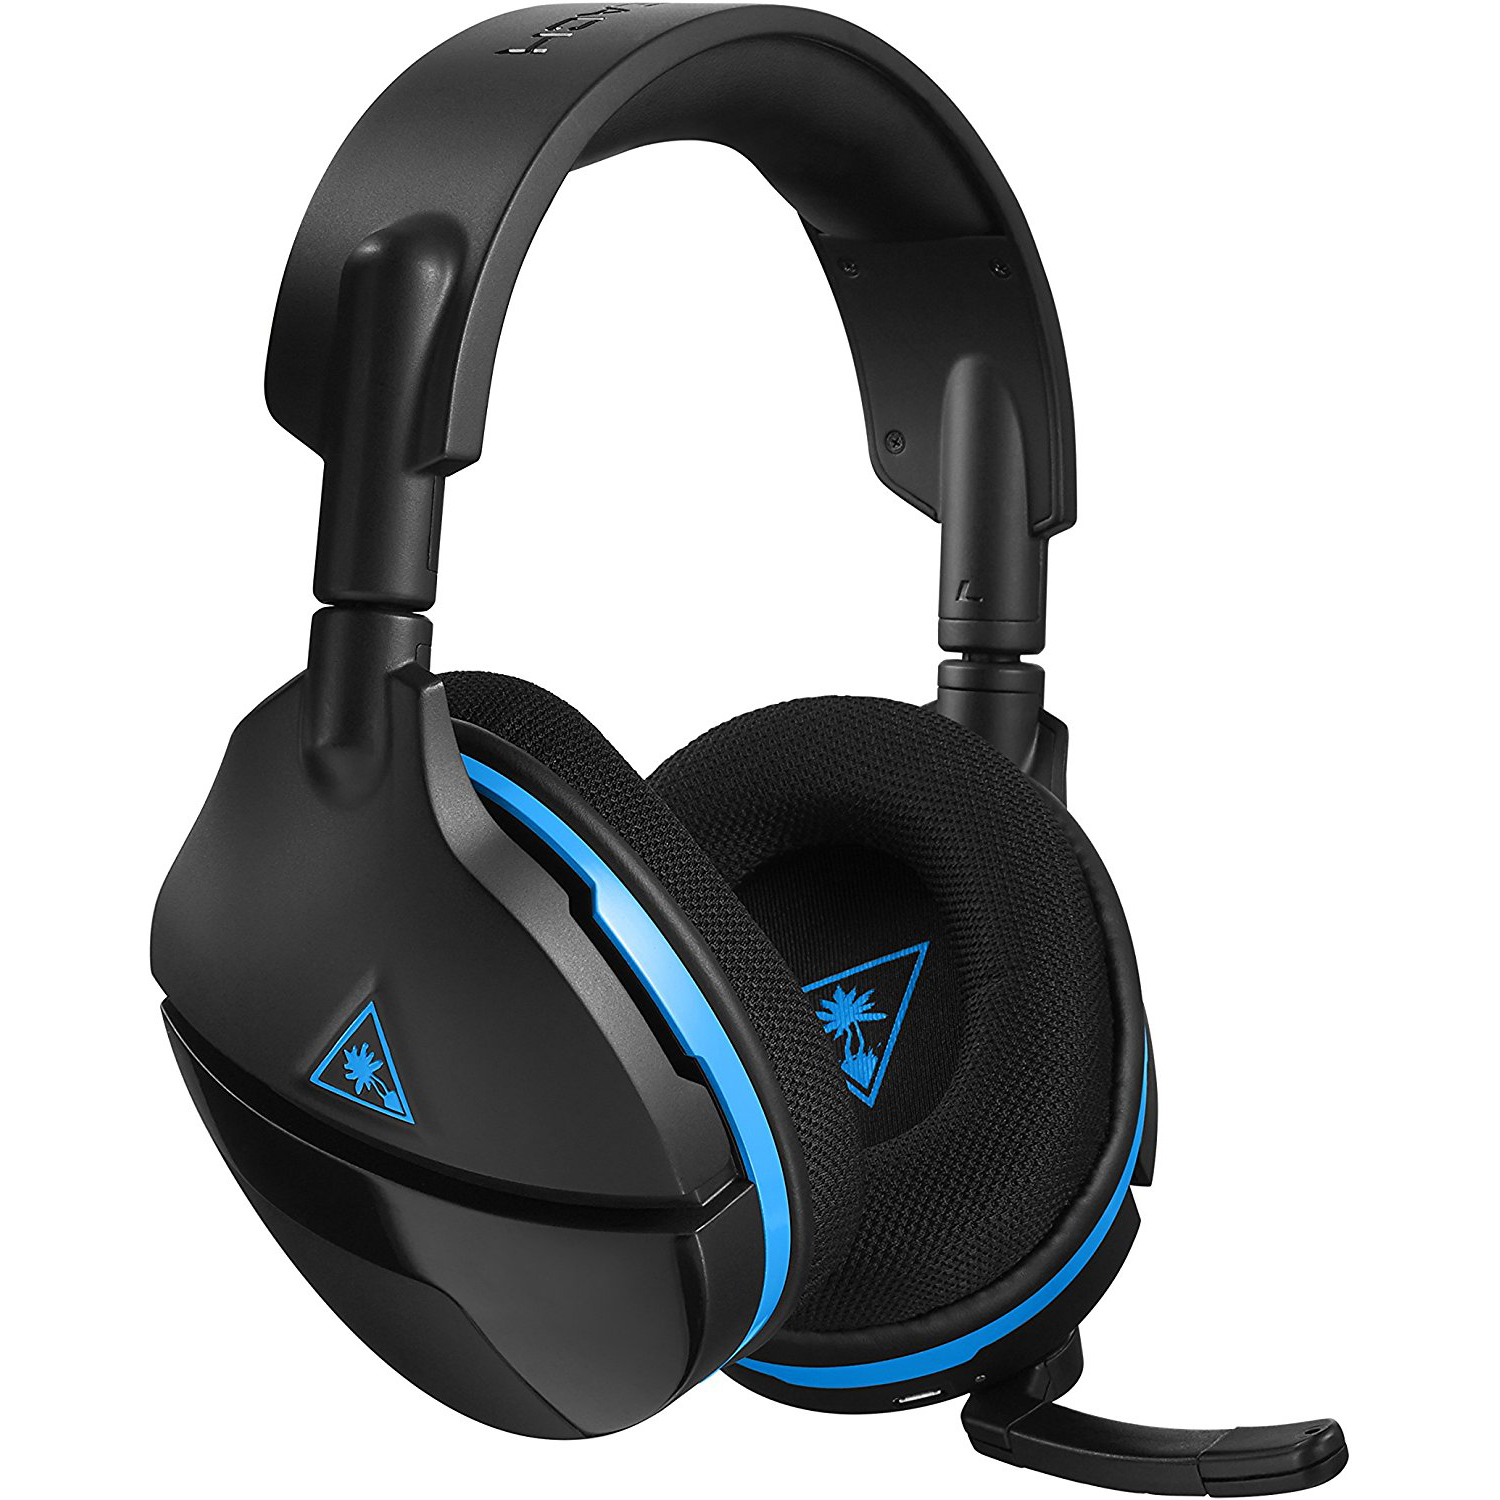 Turtle Beach Stealth 600 Wireless Gaming Headset for PS4, PC (Black)